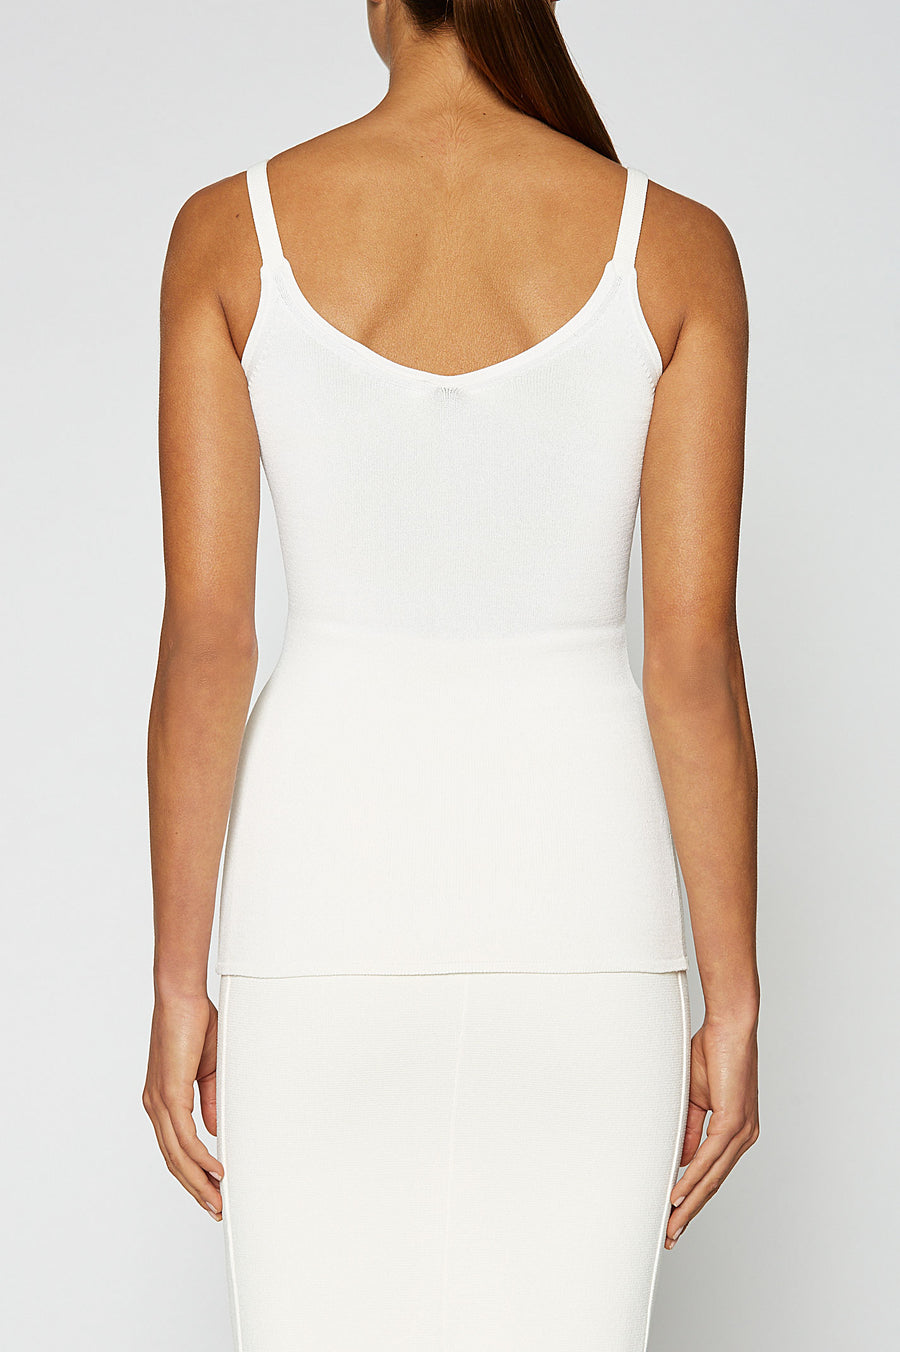 CREPE KNIT CAMISOLE, white color